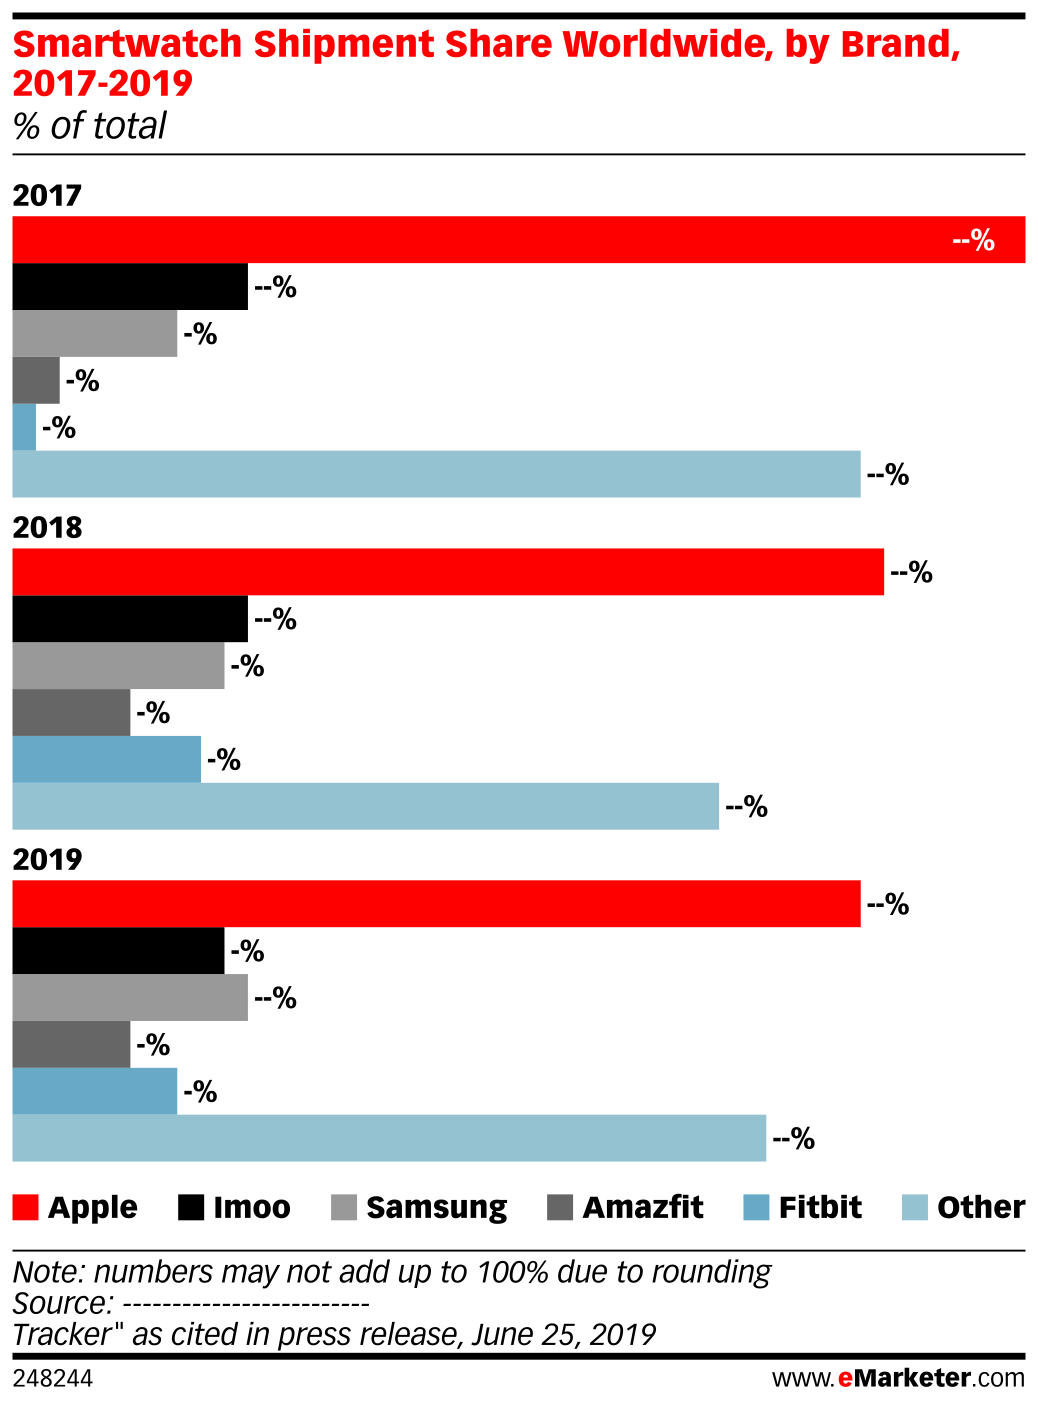 Smartwatch Shipment Share Worldwide, by Brand, 2017-2019 (% of total)